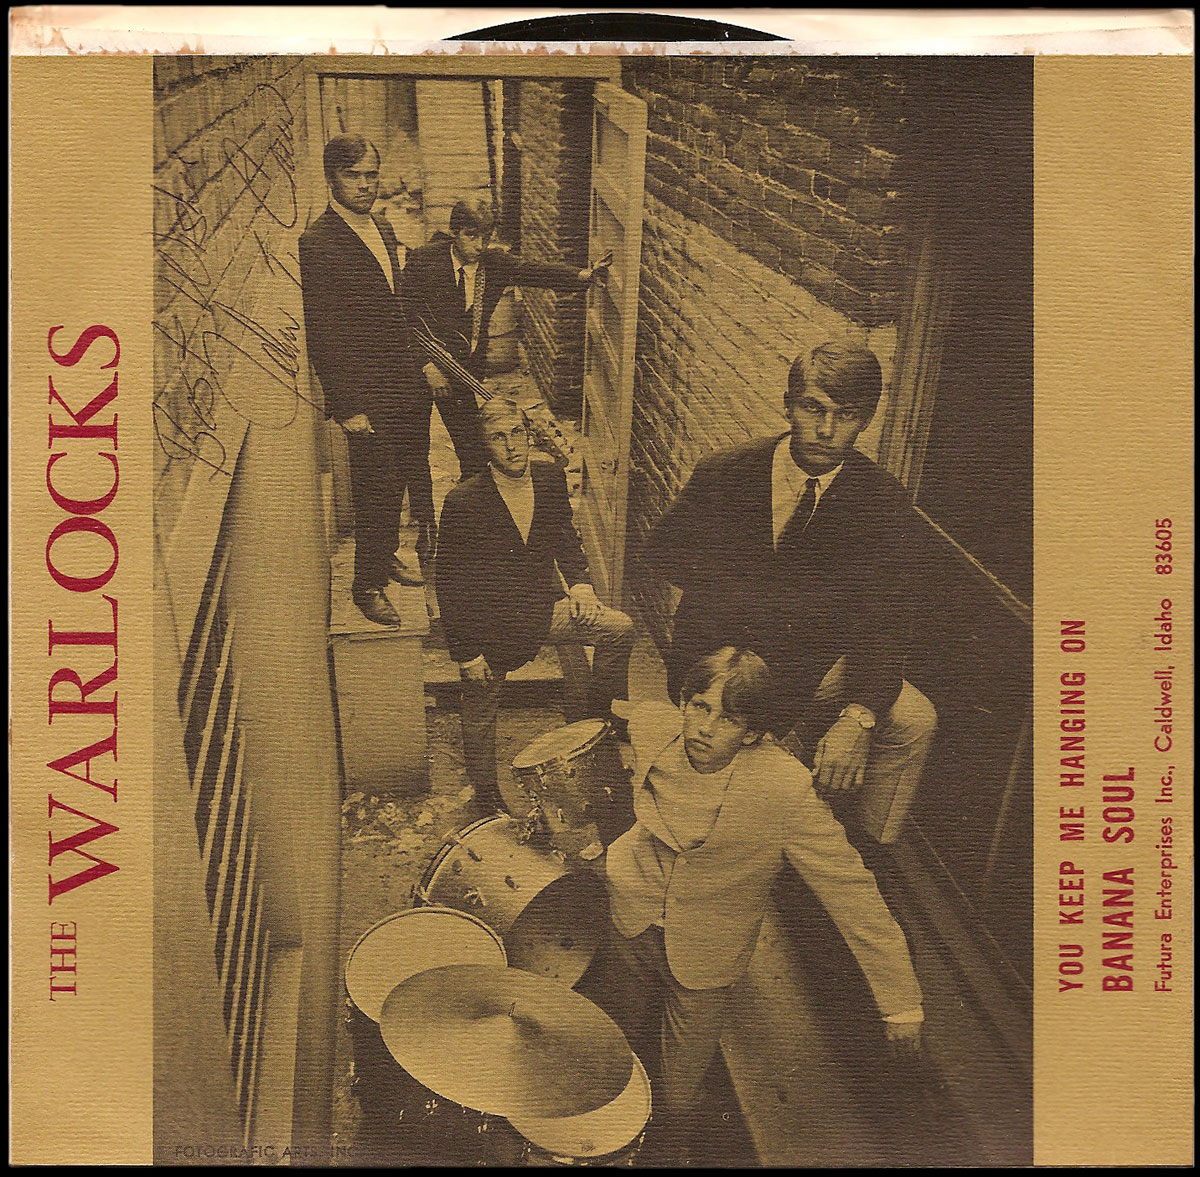 The Warlocks photo on their NWI 45 sleeve, from front to back: Mark Lanfear (drums), Jerry Sloan, Jon Anderson, John Crew and Steve Messuri (with bass)